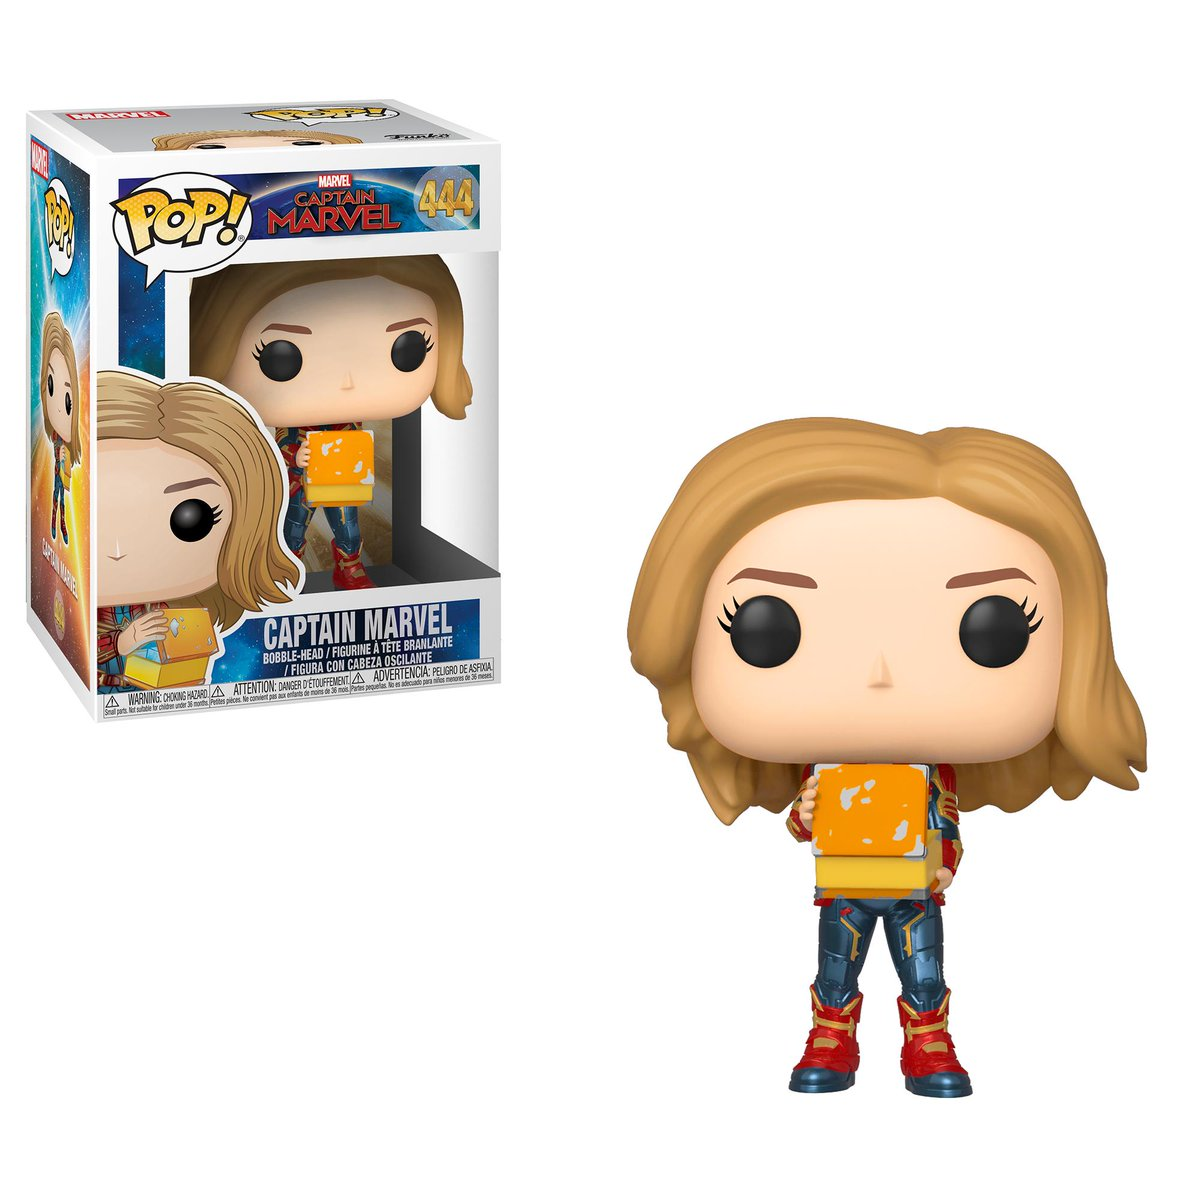 RT & follow @OriginalFunko for a chance to win a Captain Marvel Pop! #CaptainMarvel